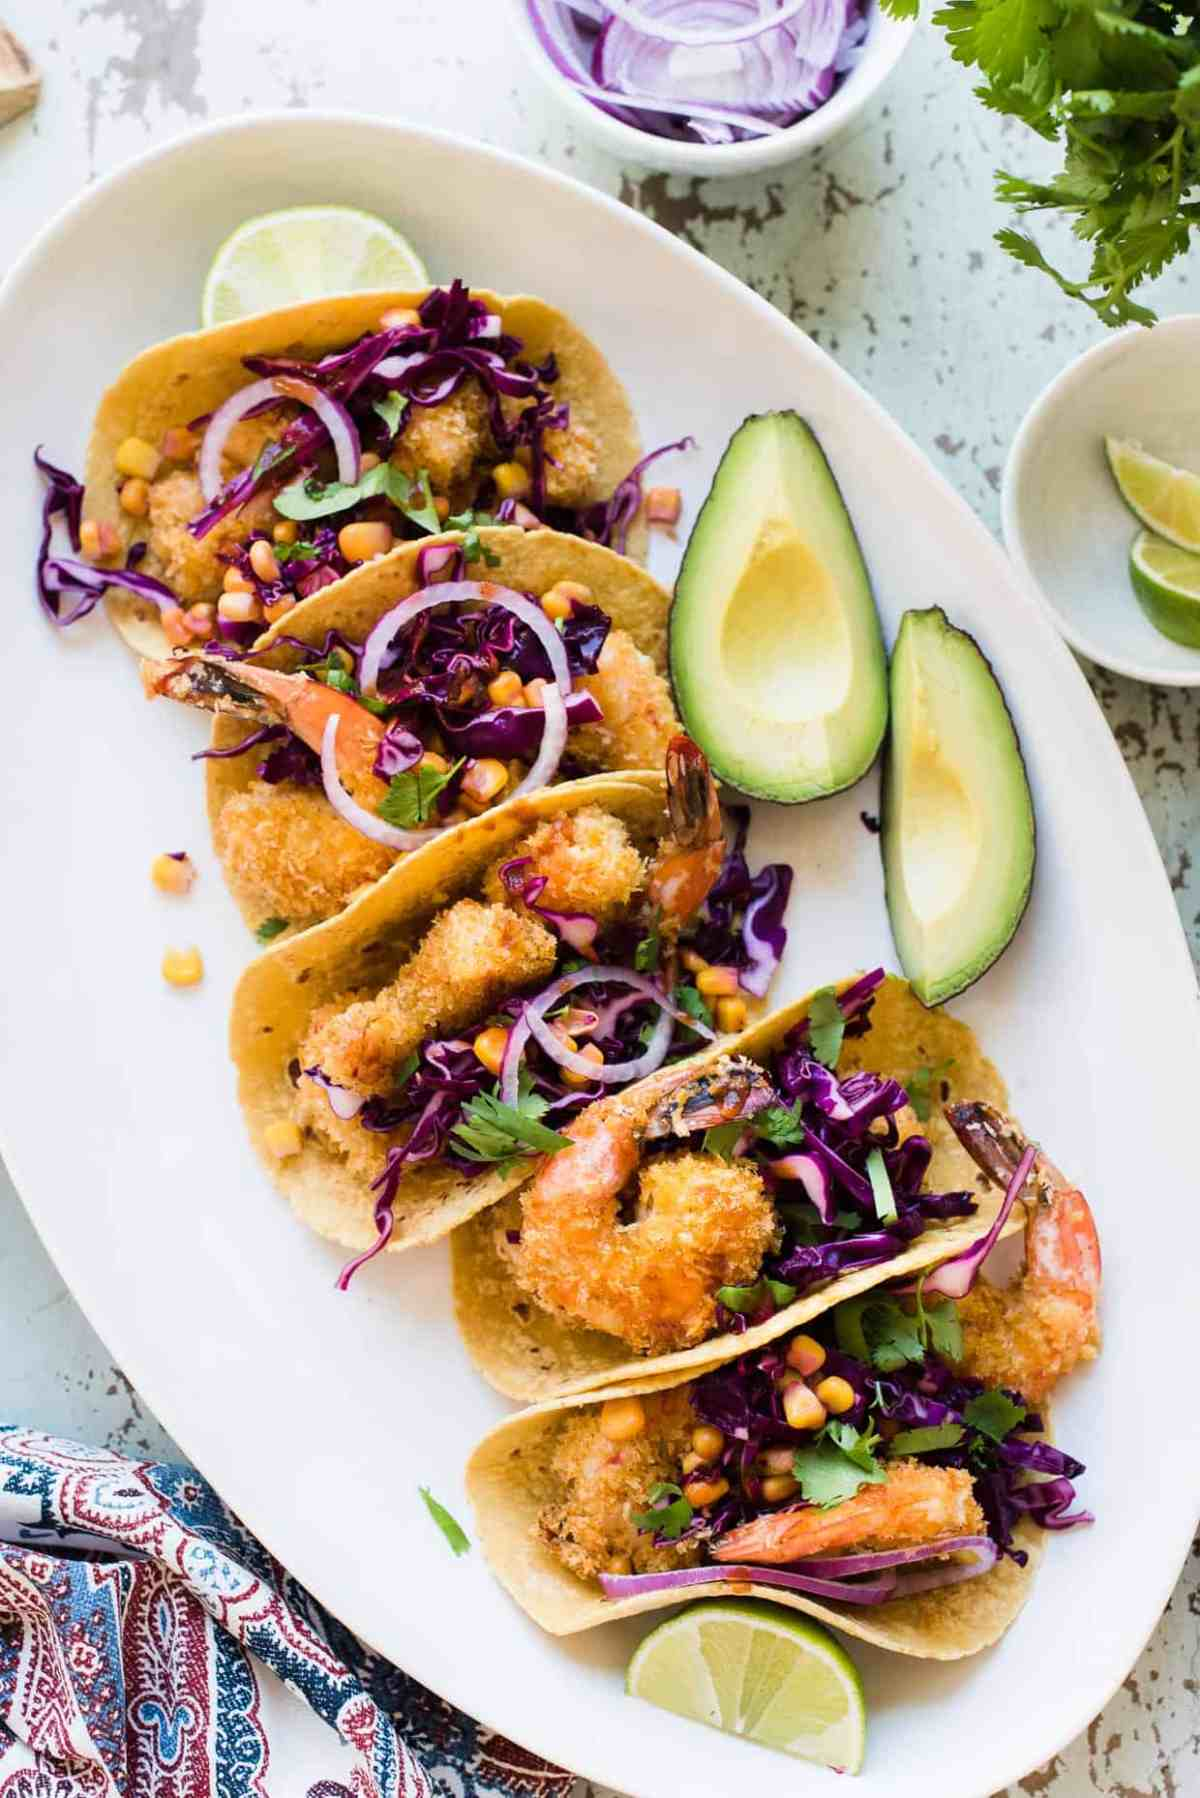 For the Oven-Fried Crispy Shrimp Tacos on a plate served with avocados.